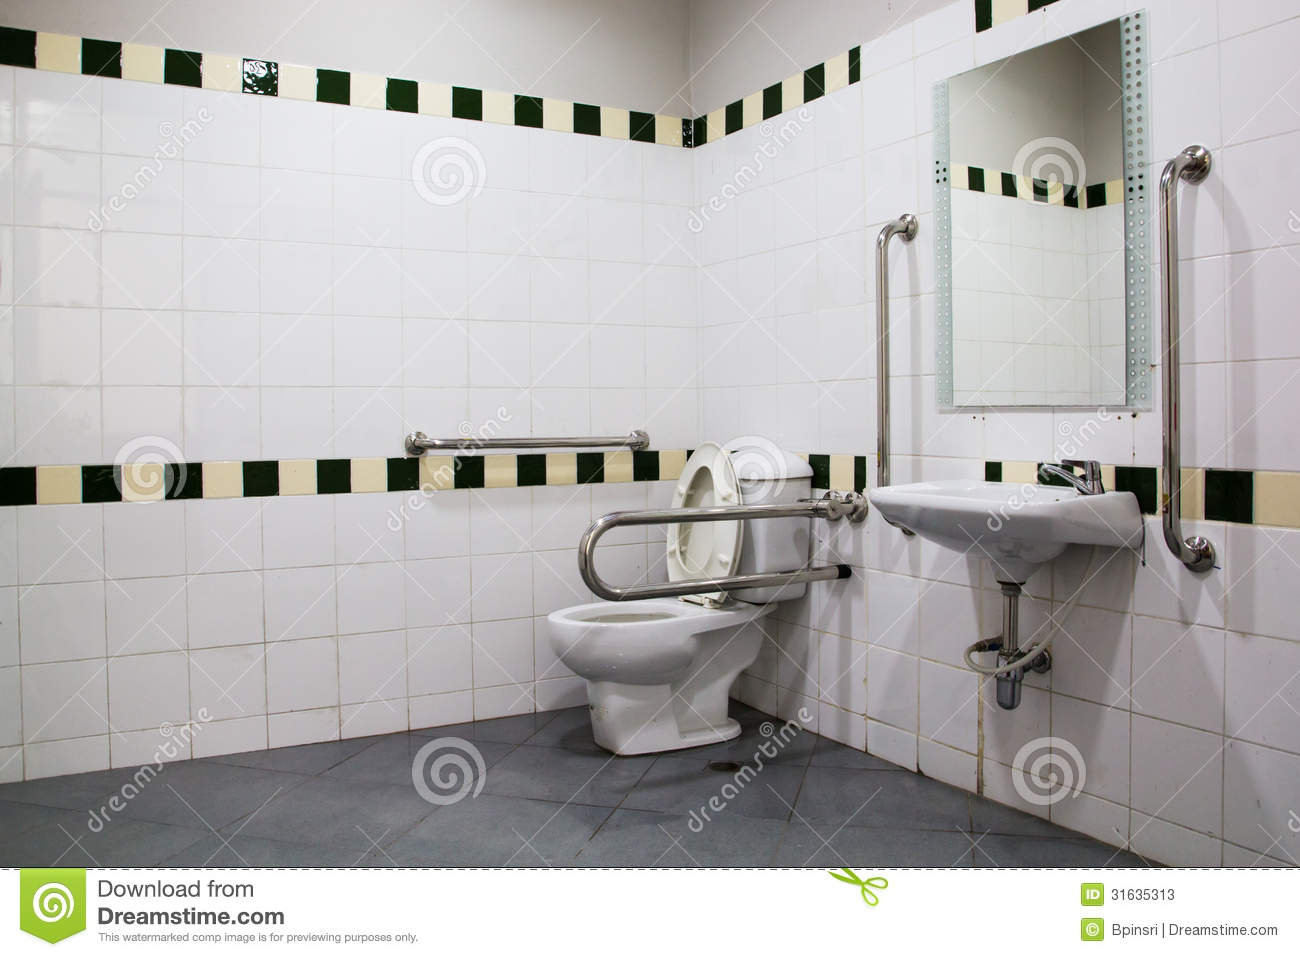 Handicap Bathroom With Grab Bars And Ceramic Tile Stock